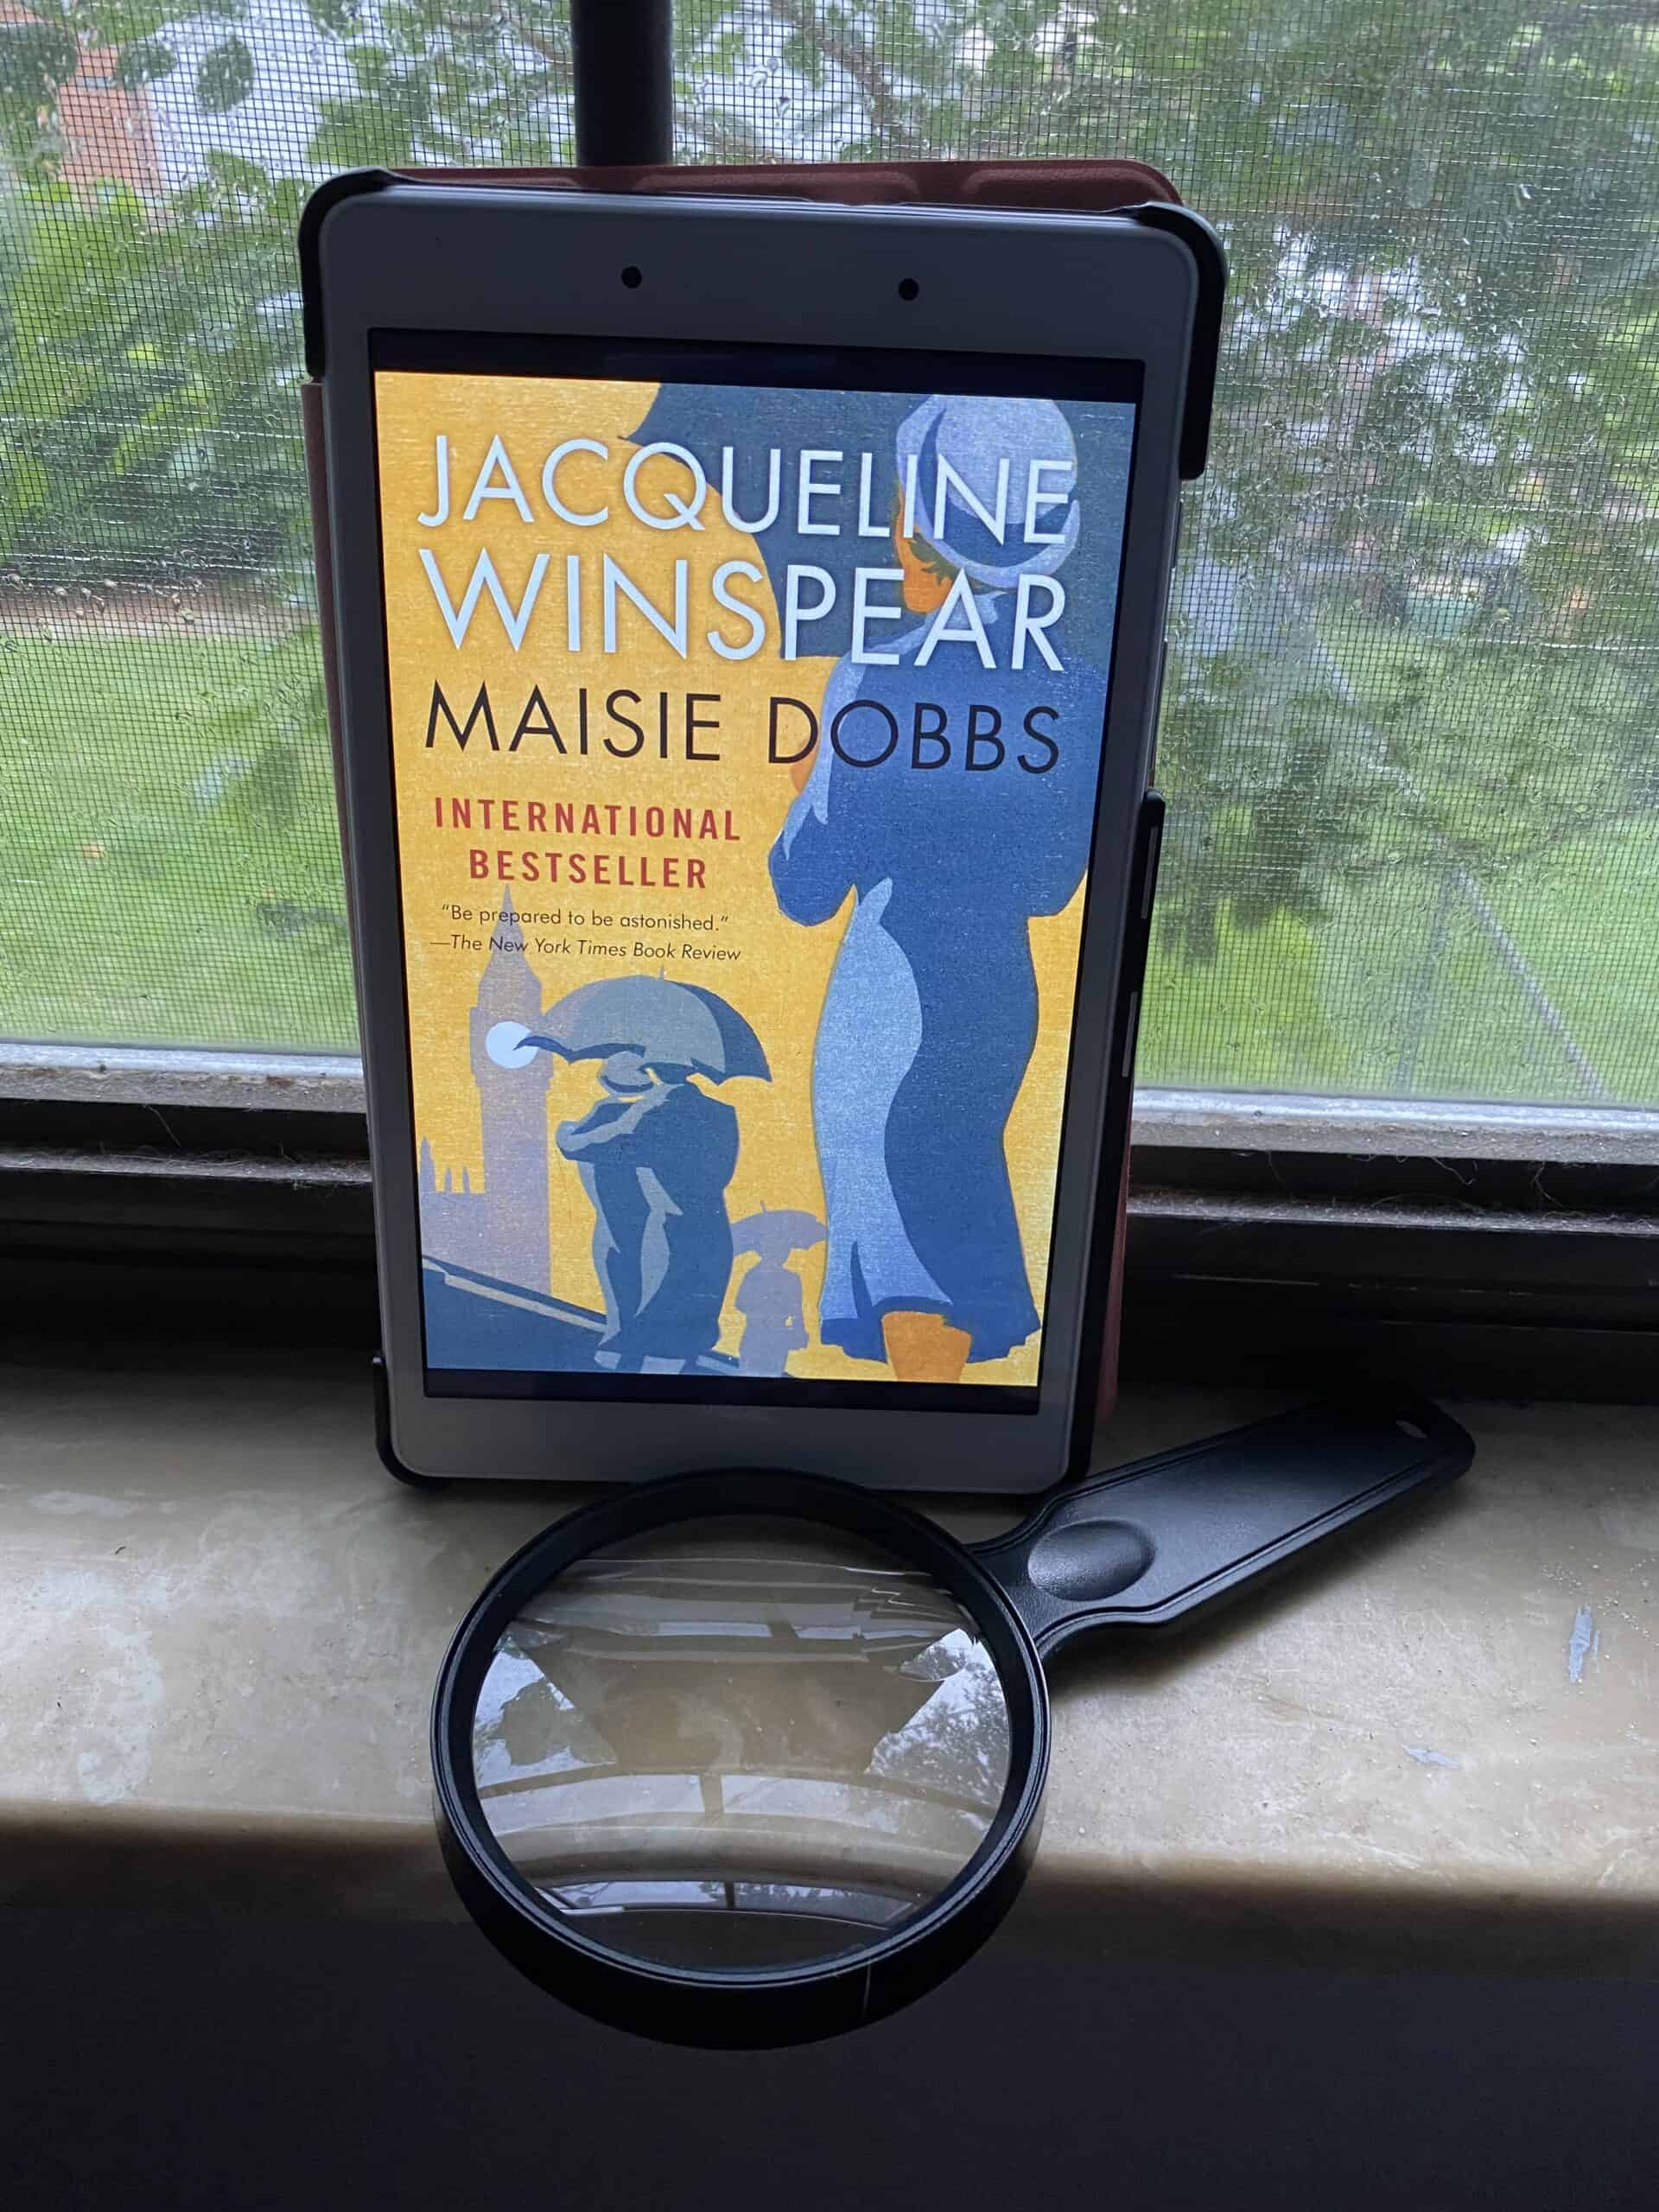 An image for a book review. Photograph of the book Maisie Dobbs by Jacqueline Winspear